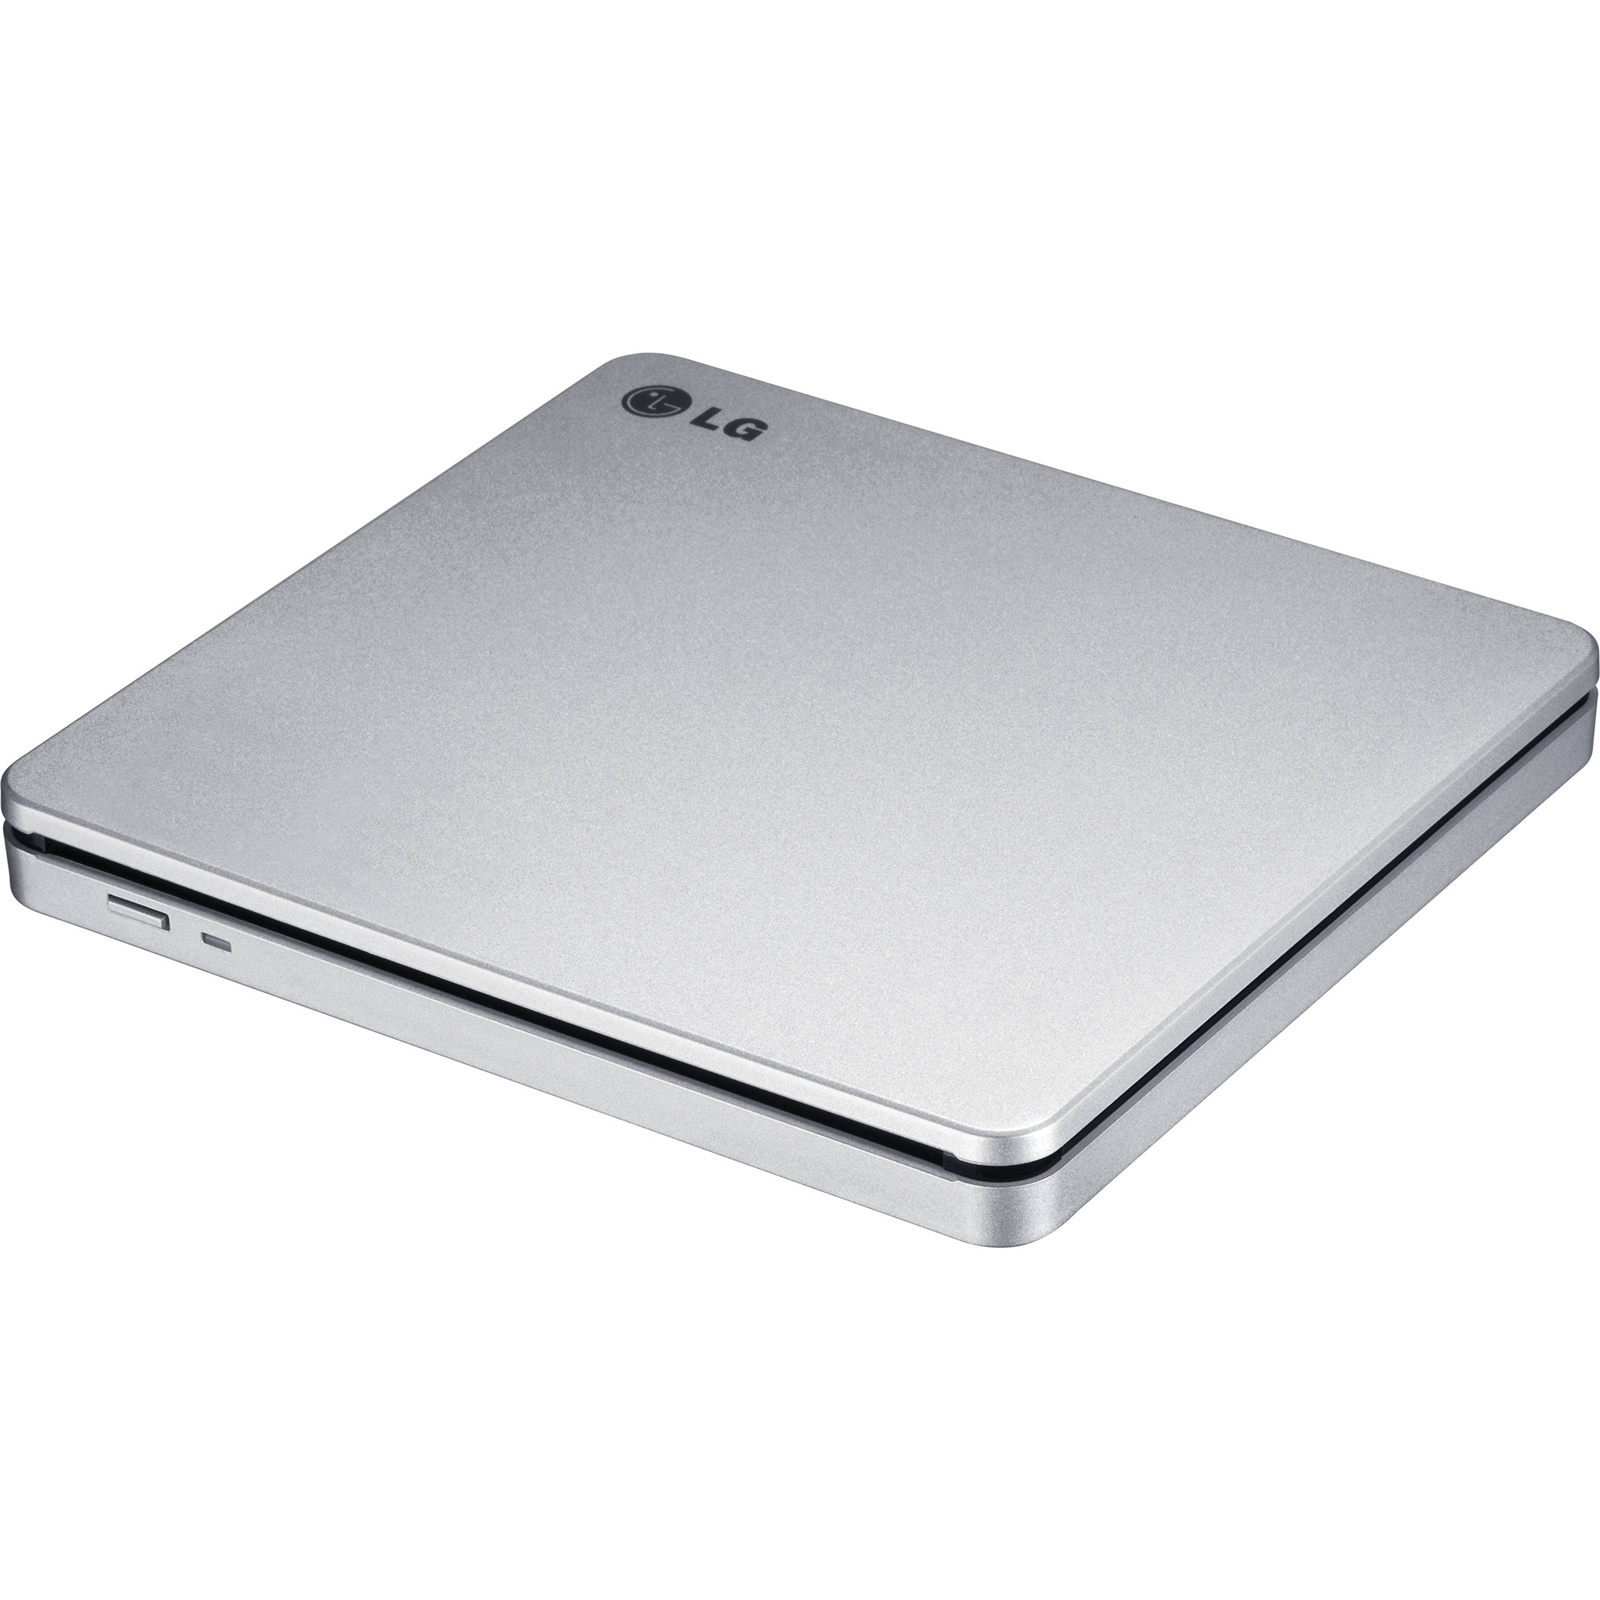 Buy The Lg Gp70ns50 Supermulti Blade 8x Portable Dvd Writer With M External Tech Rw Disc Slide Load Win Mac Os